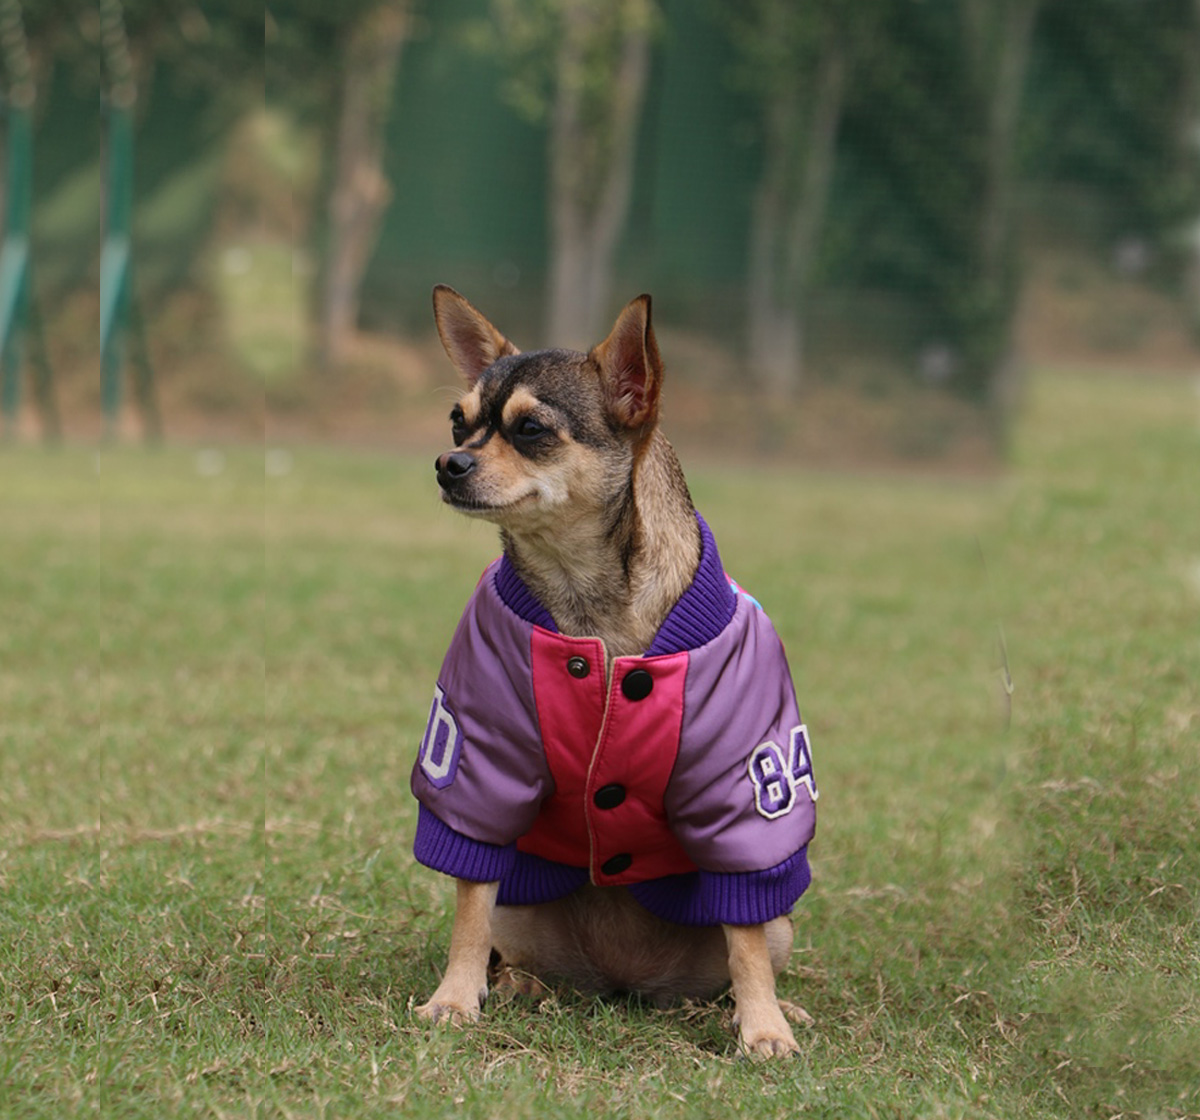 Touchdog Mix & Match Style Jacket Pink - Large